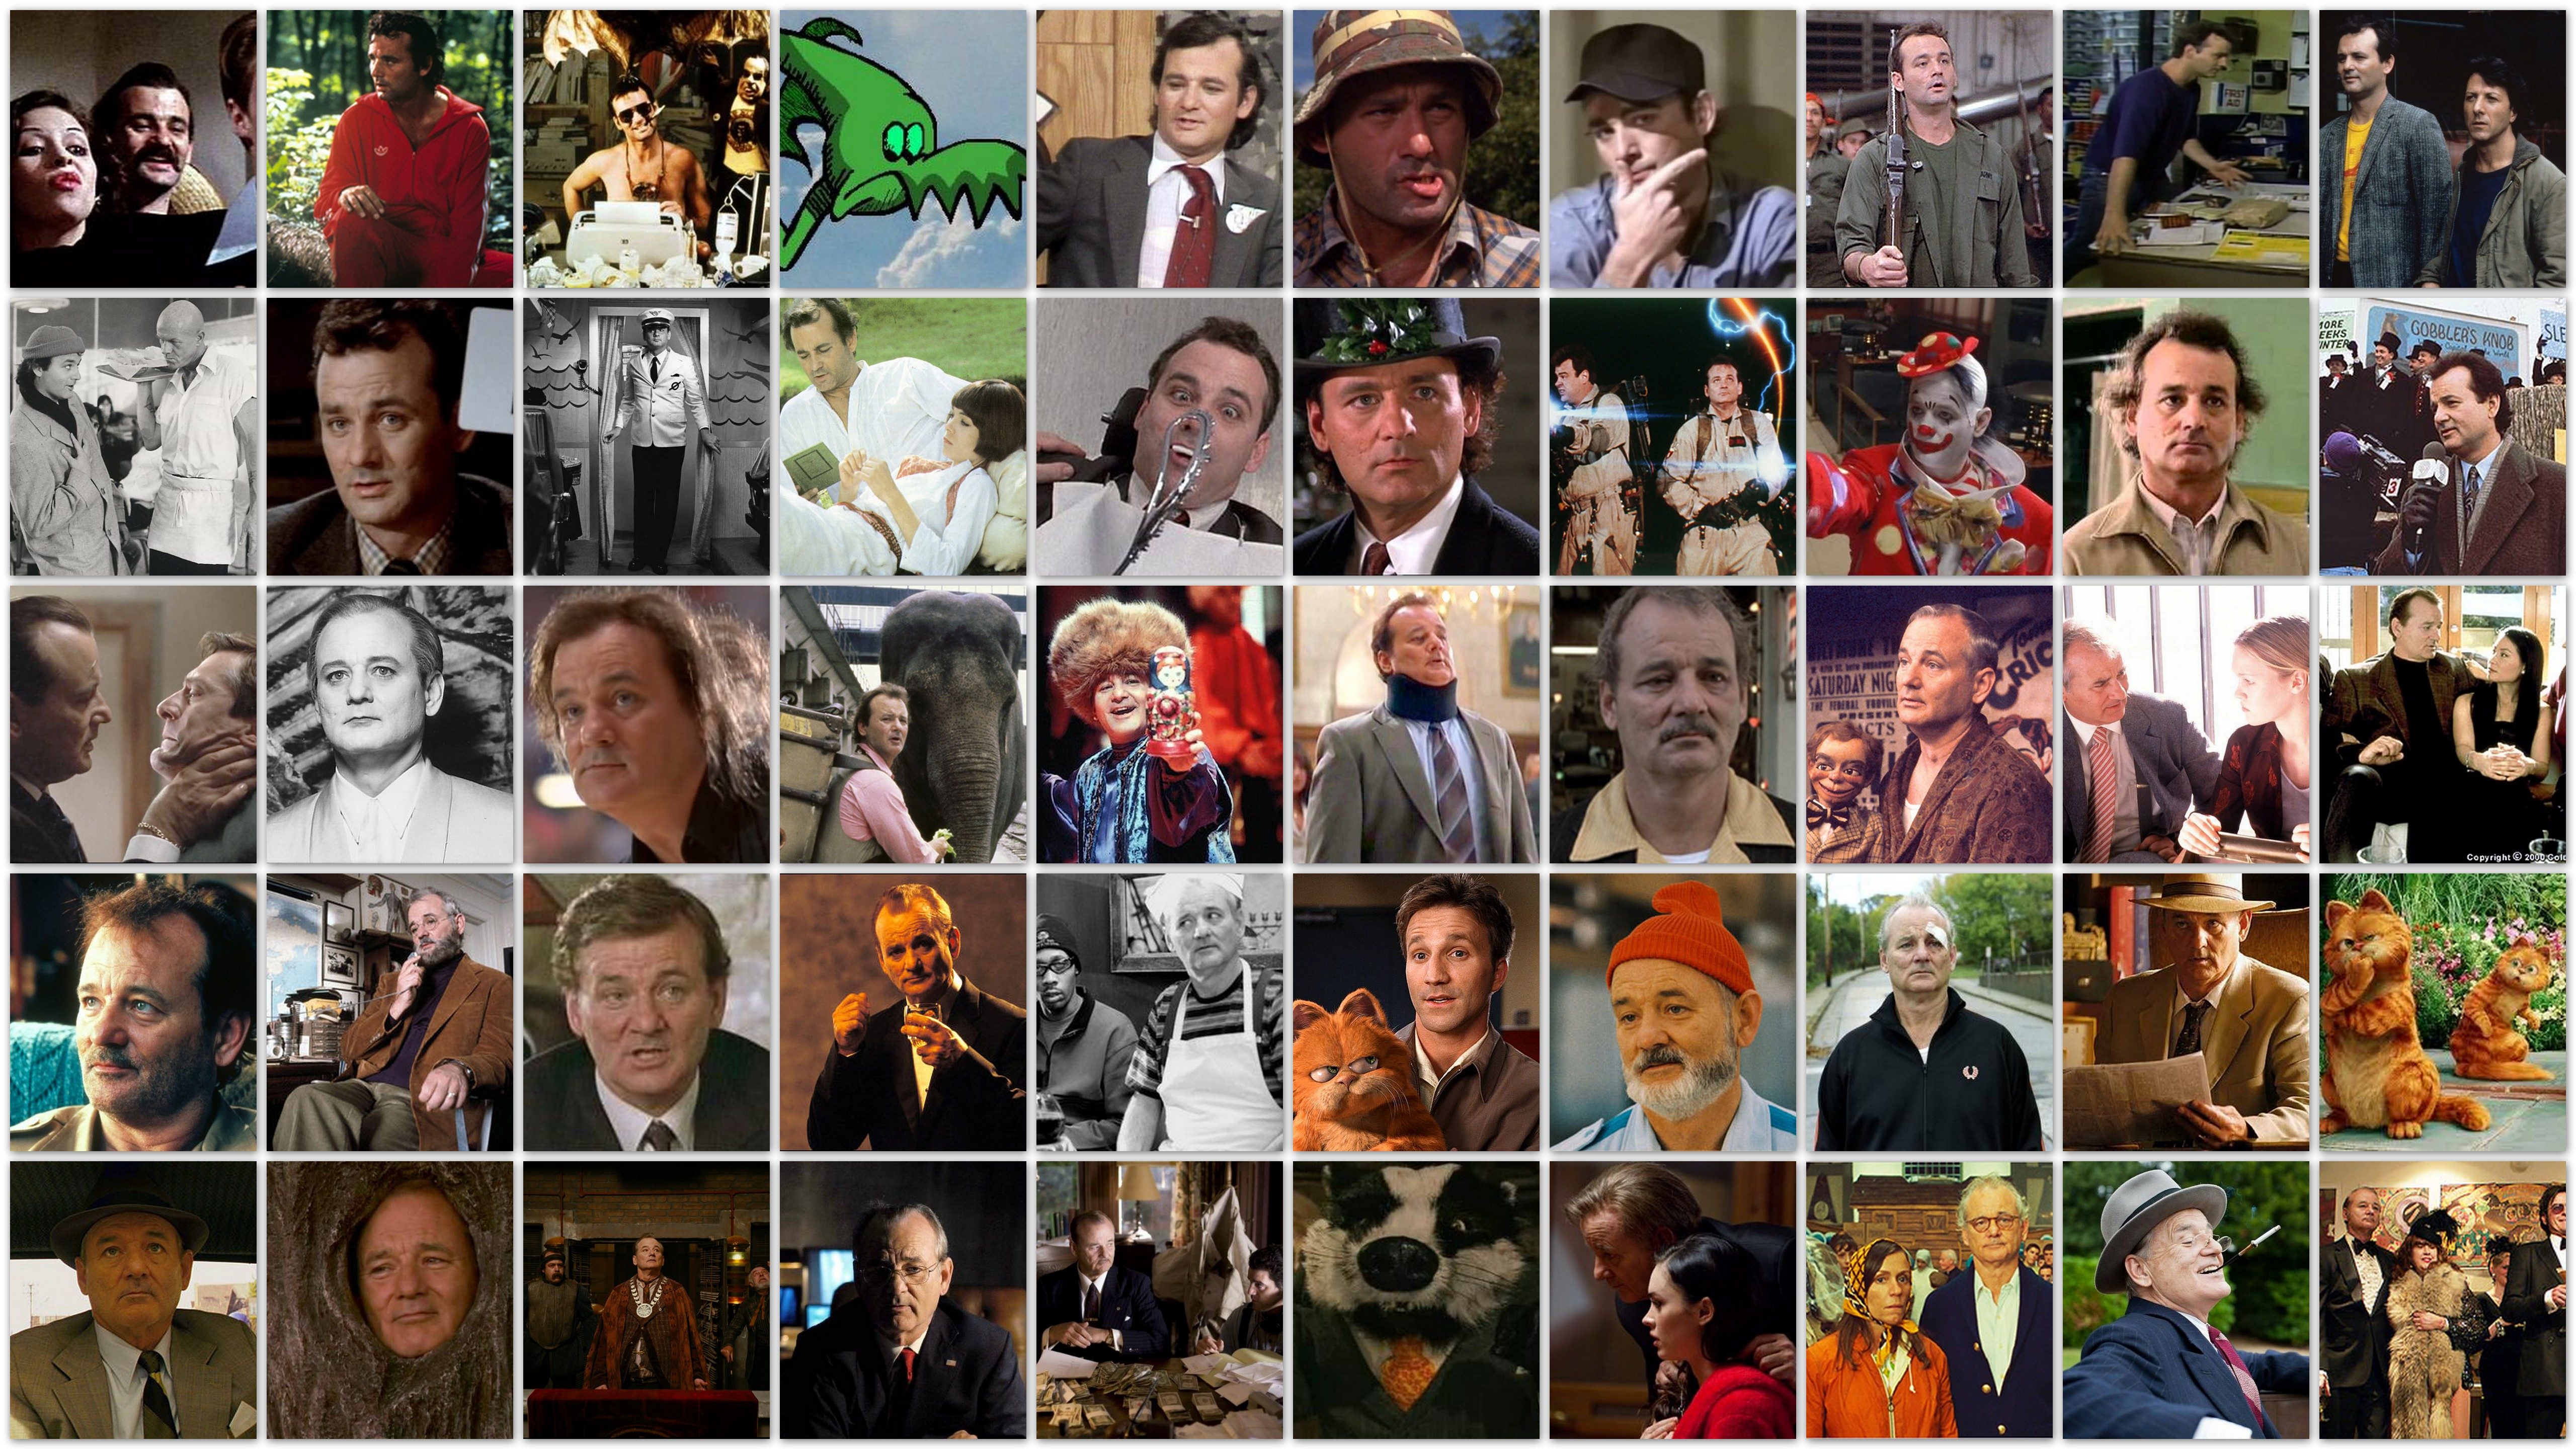 Overview roles and movies of actor Bill Murray